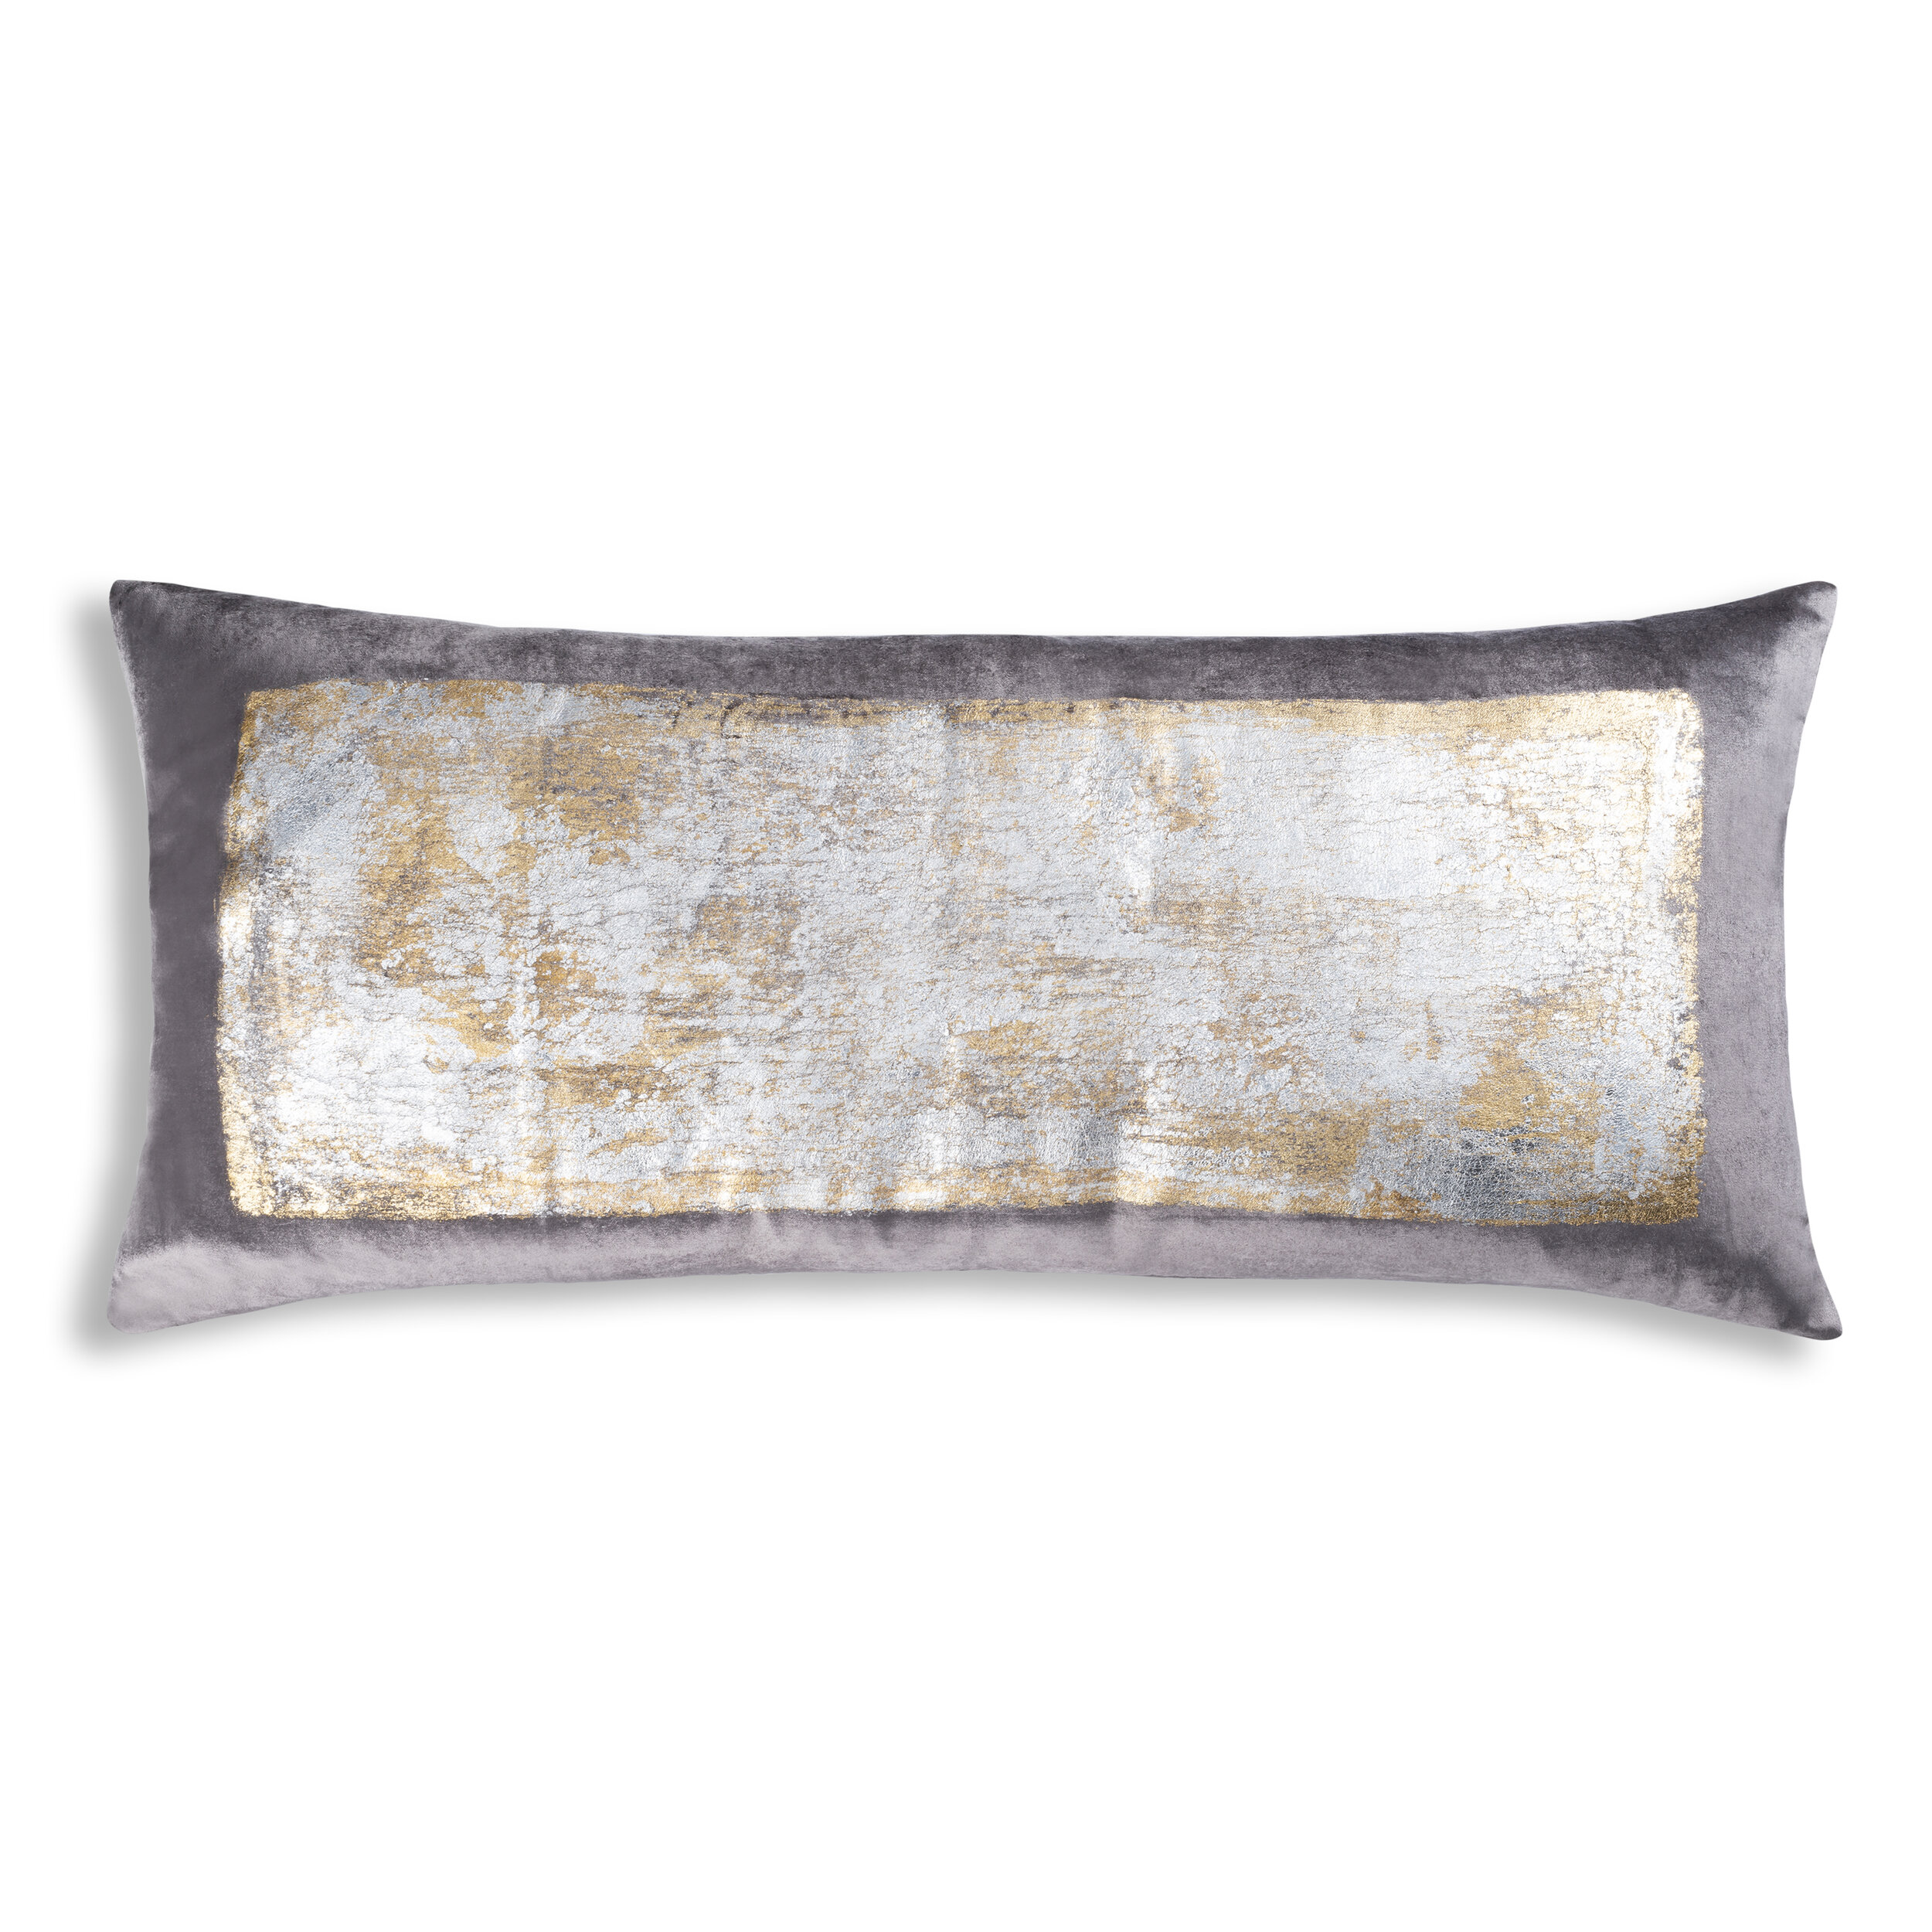 Verona Lumbar Pillow Gold Threads Stone Marie Burgos Collection Modern Furniture Home Décor